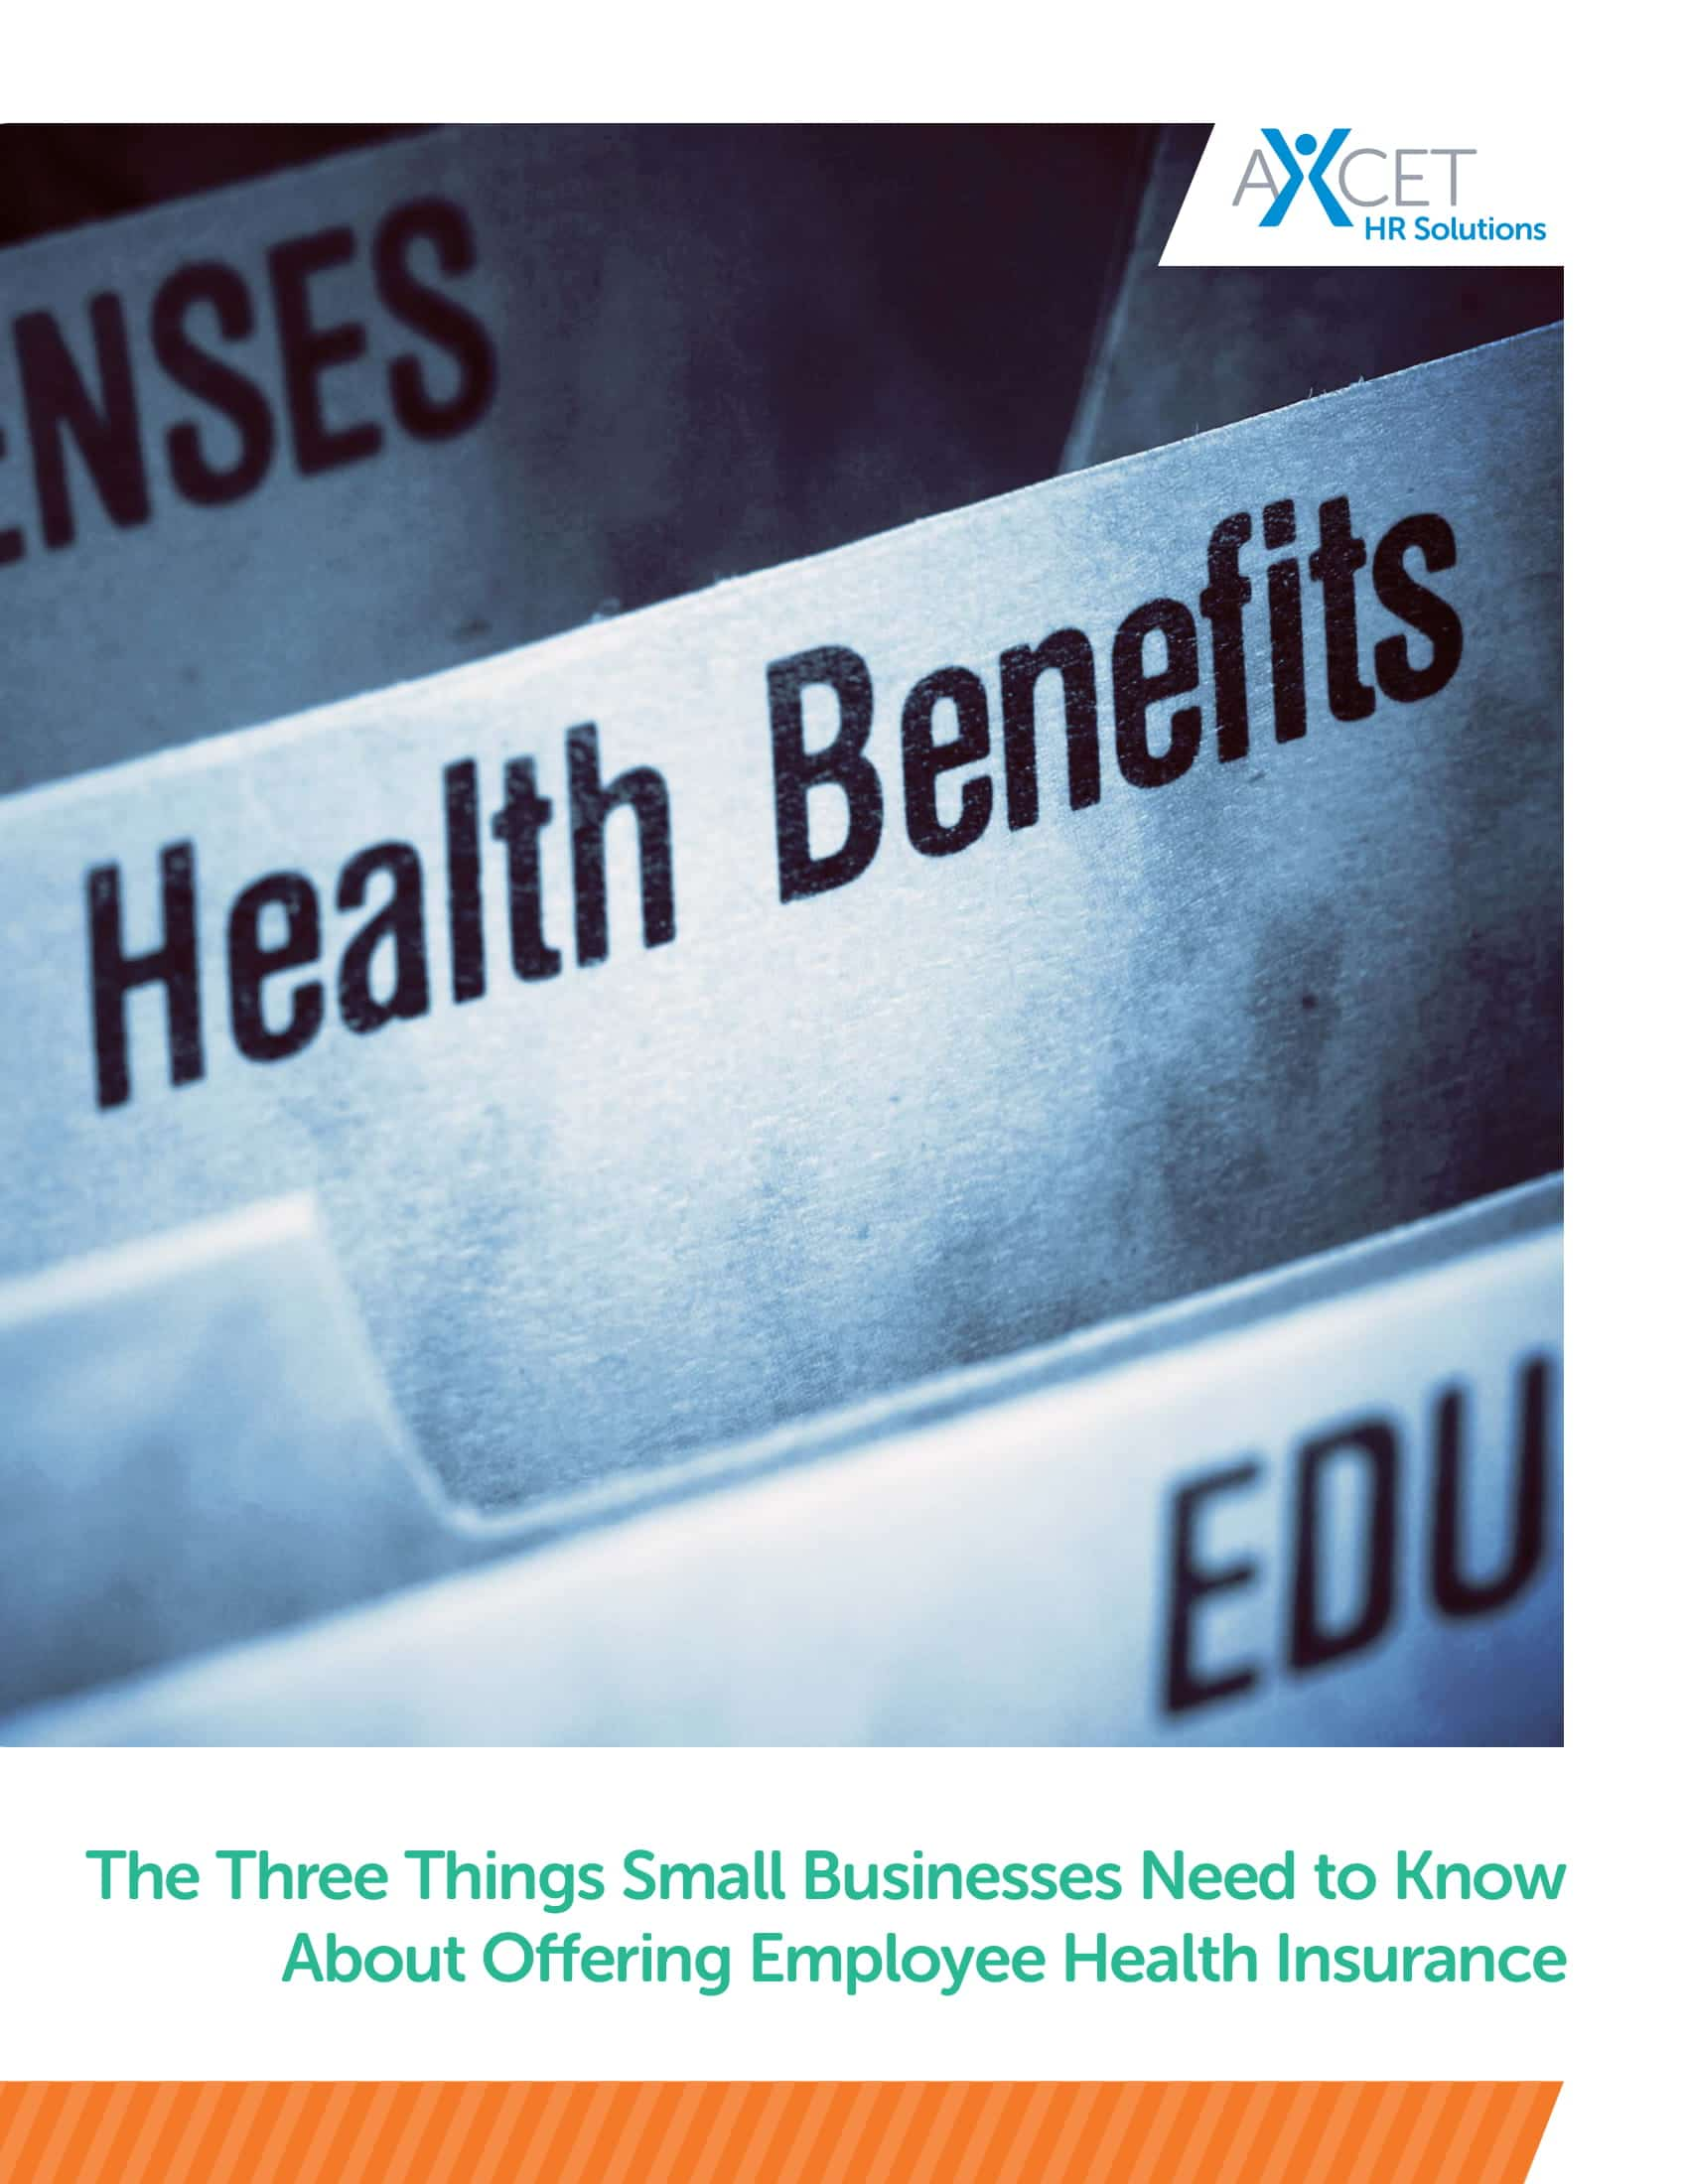 offering employee health insurance Axcet HR